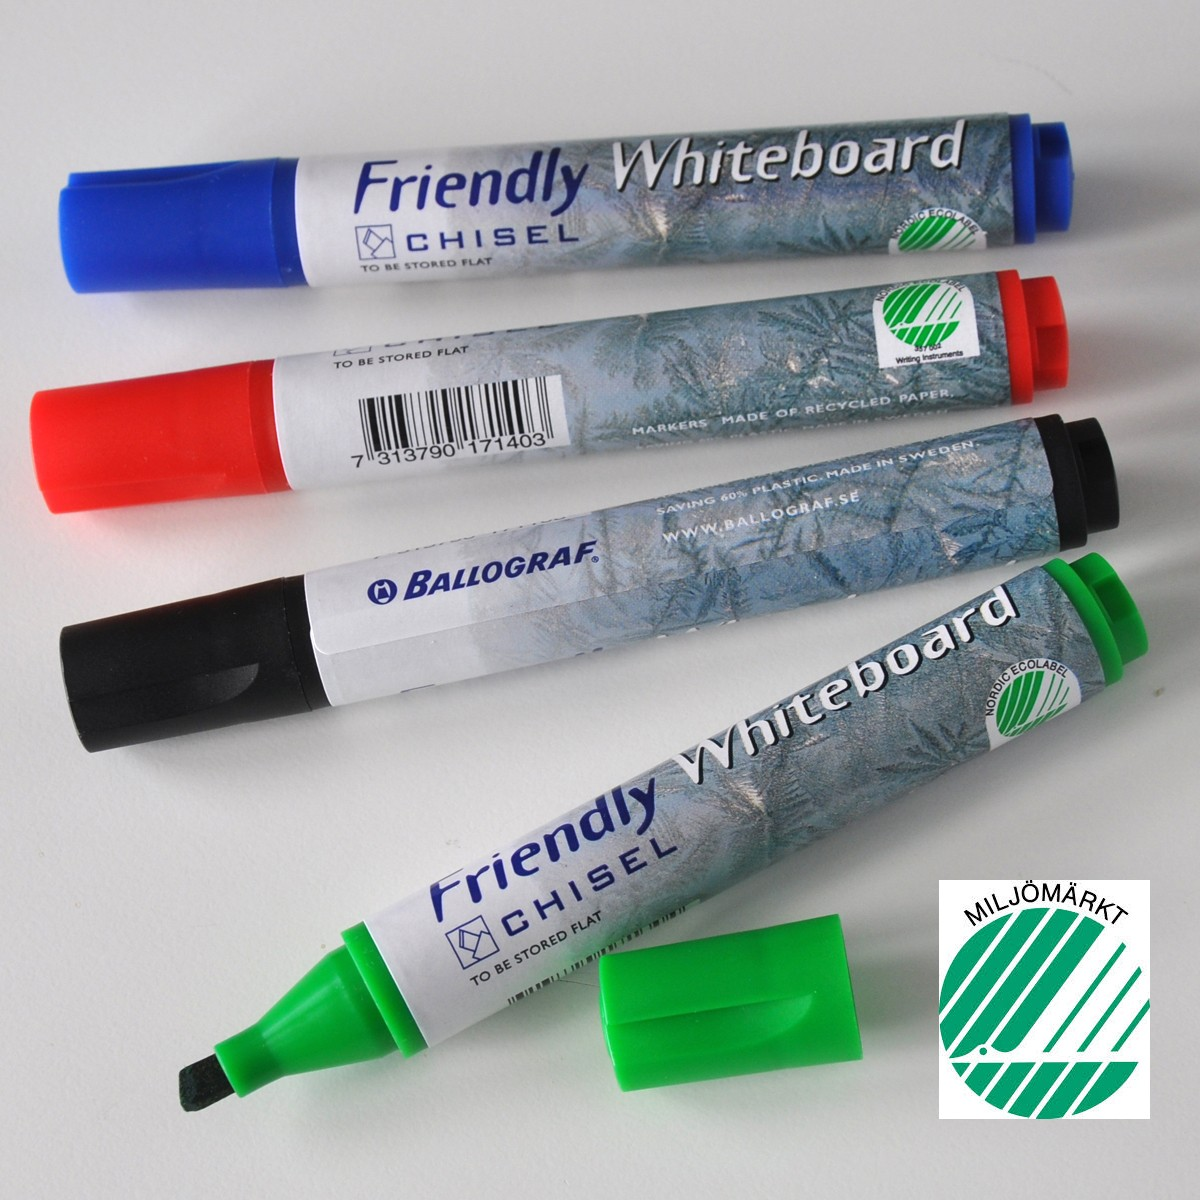 Whiteboard Marker FRIENDLY sned (4)